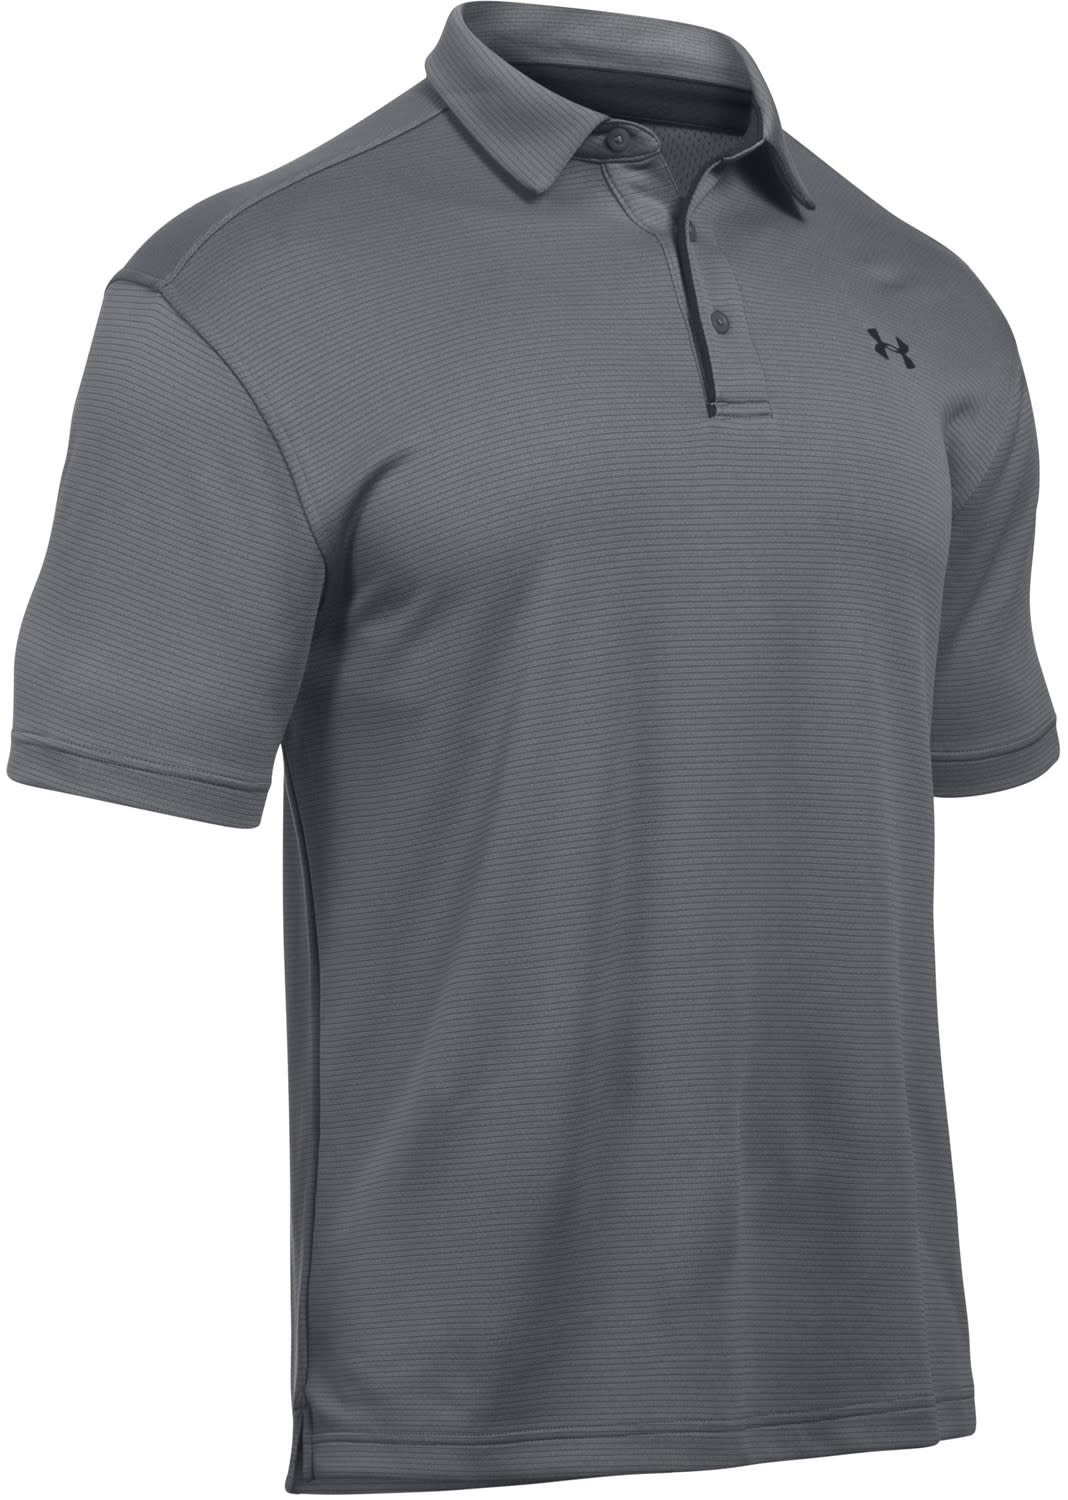 On Sale Under Armour Tech Polo Up To 40 Off